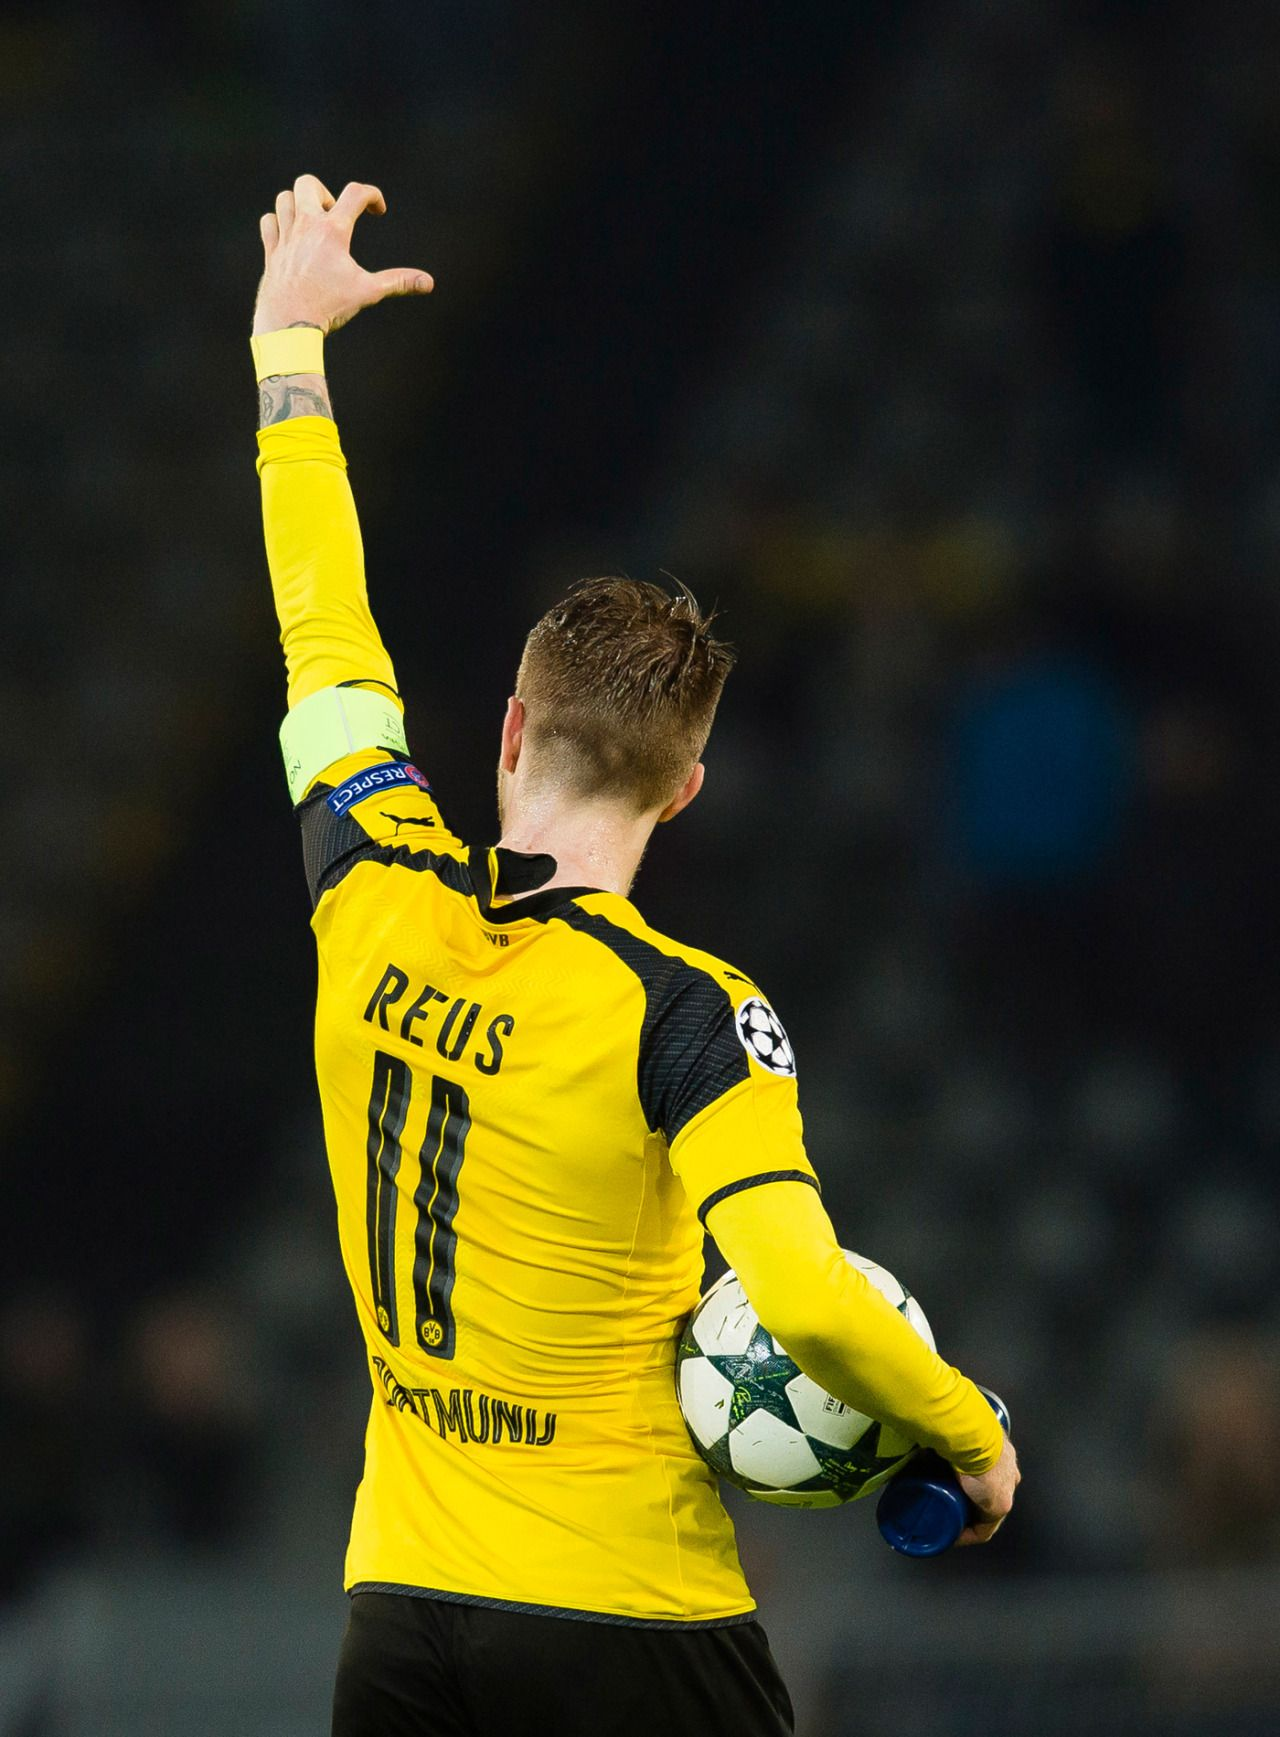 Football Is My Aesthetic Football Outfits Football Players Images Reus